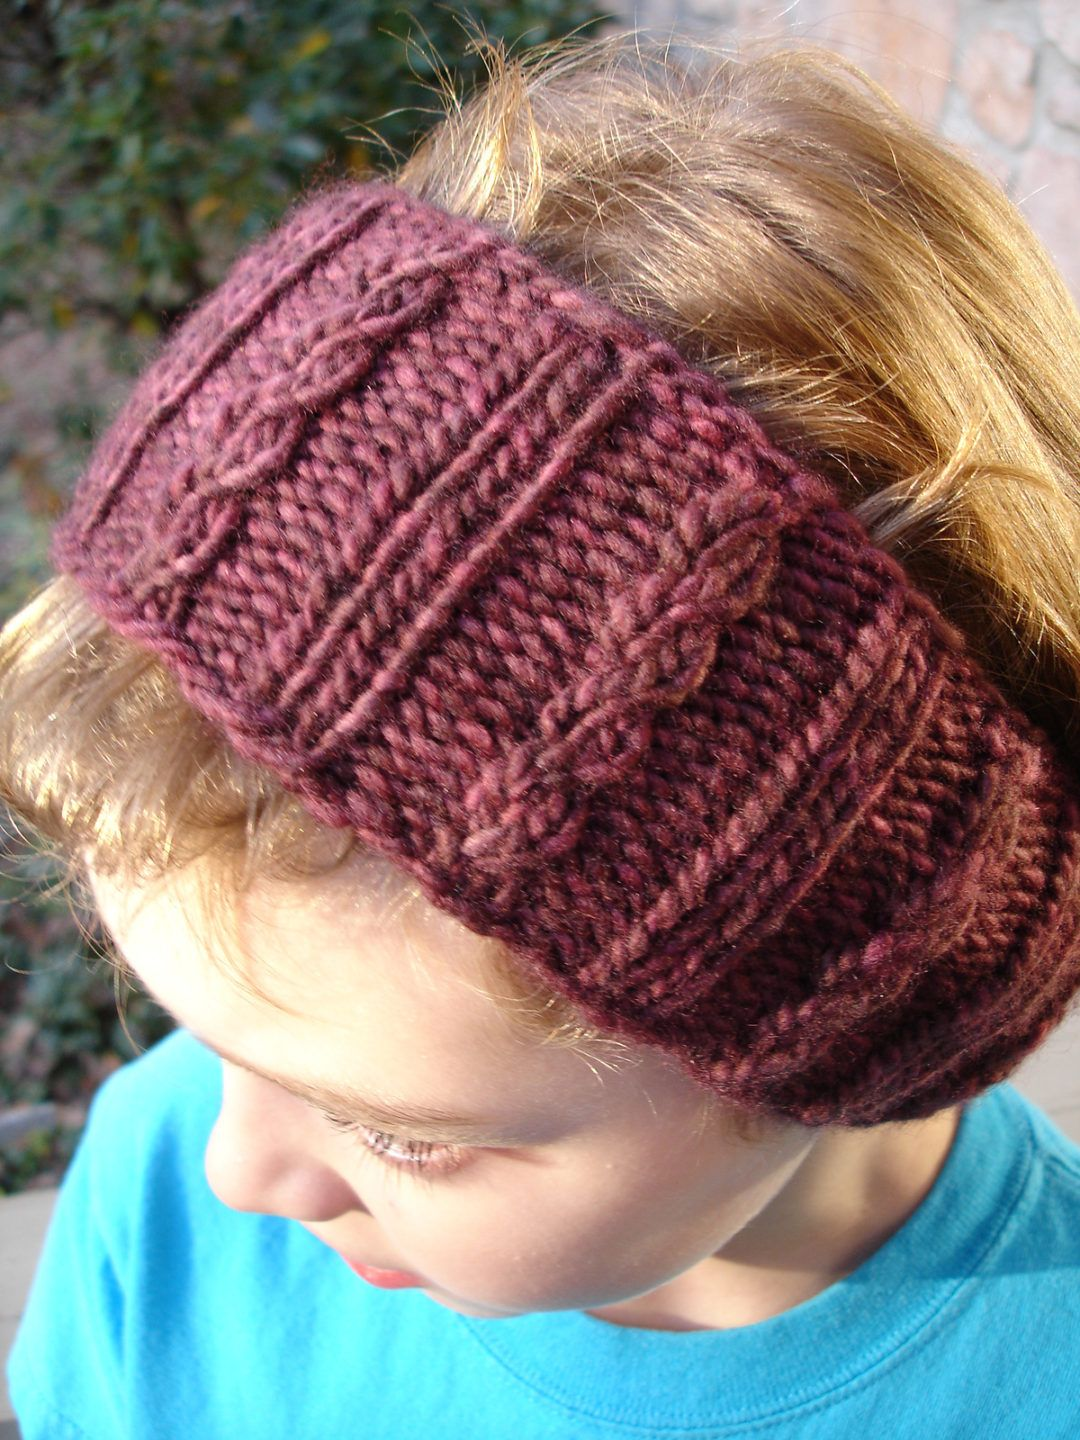 Free Knitting Pattern for Mock Cable Ear Warmer | шапочка ...